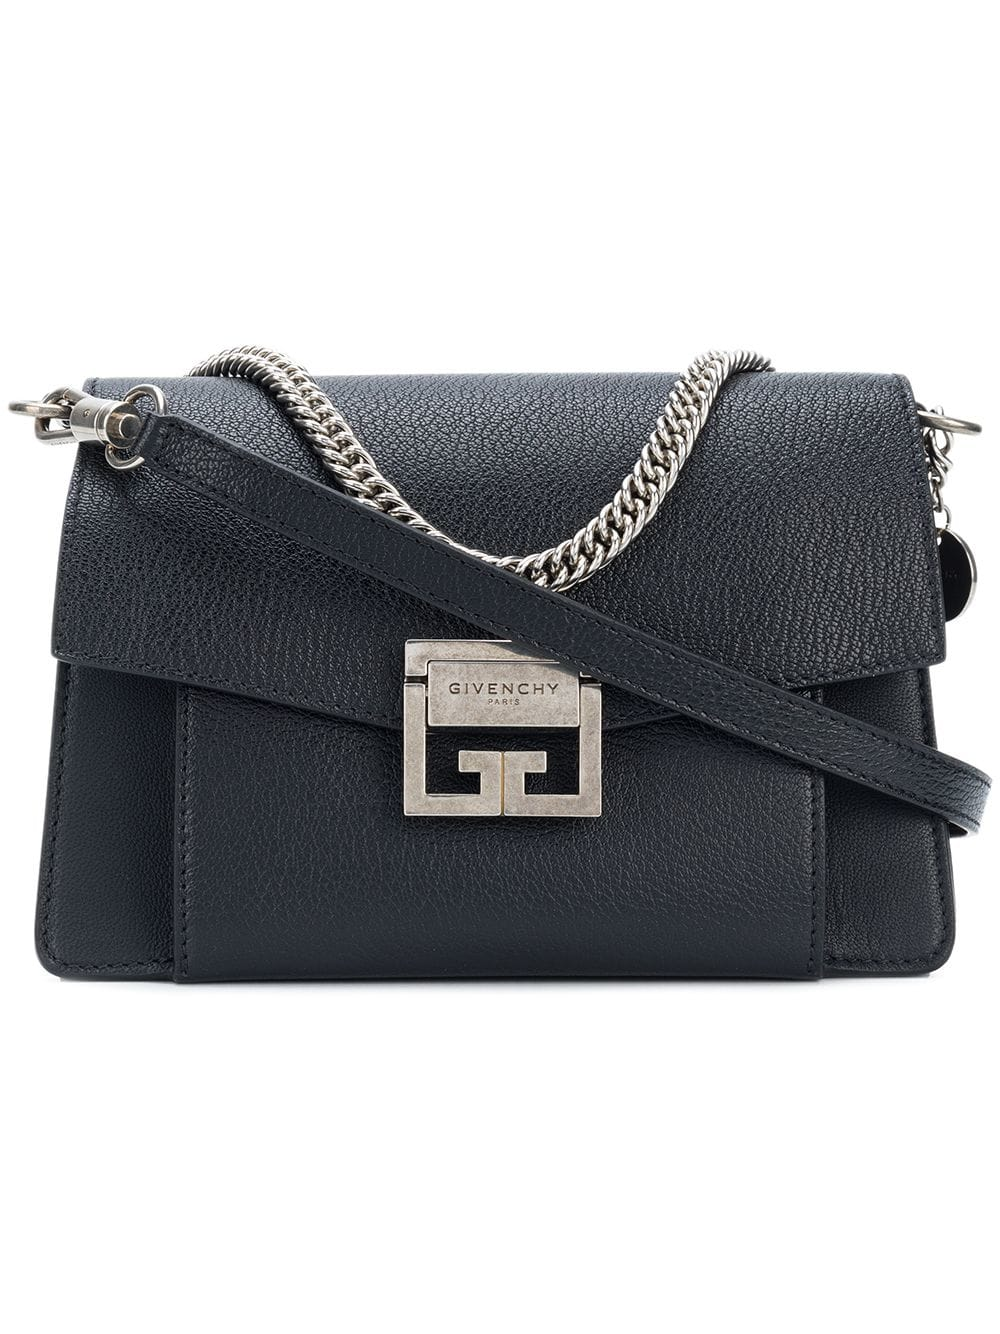 133b93d61 Small GV3 Bag In Black Leather - GIVENCHY - Russocapri